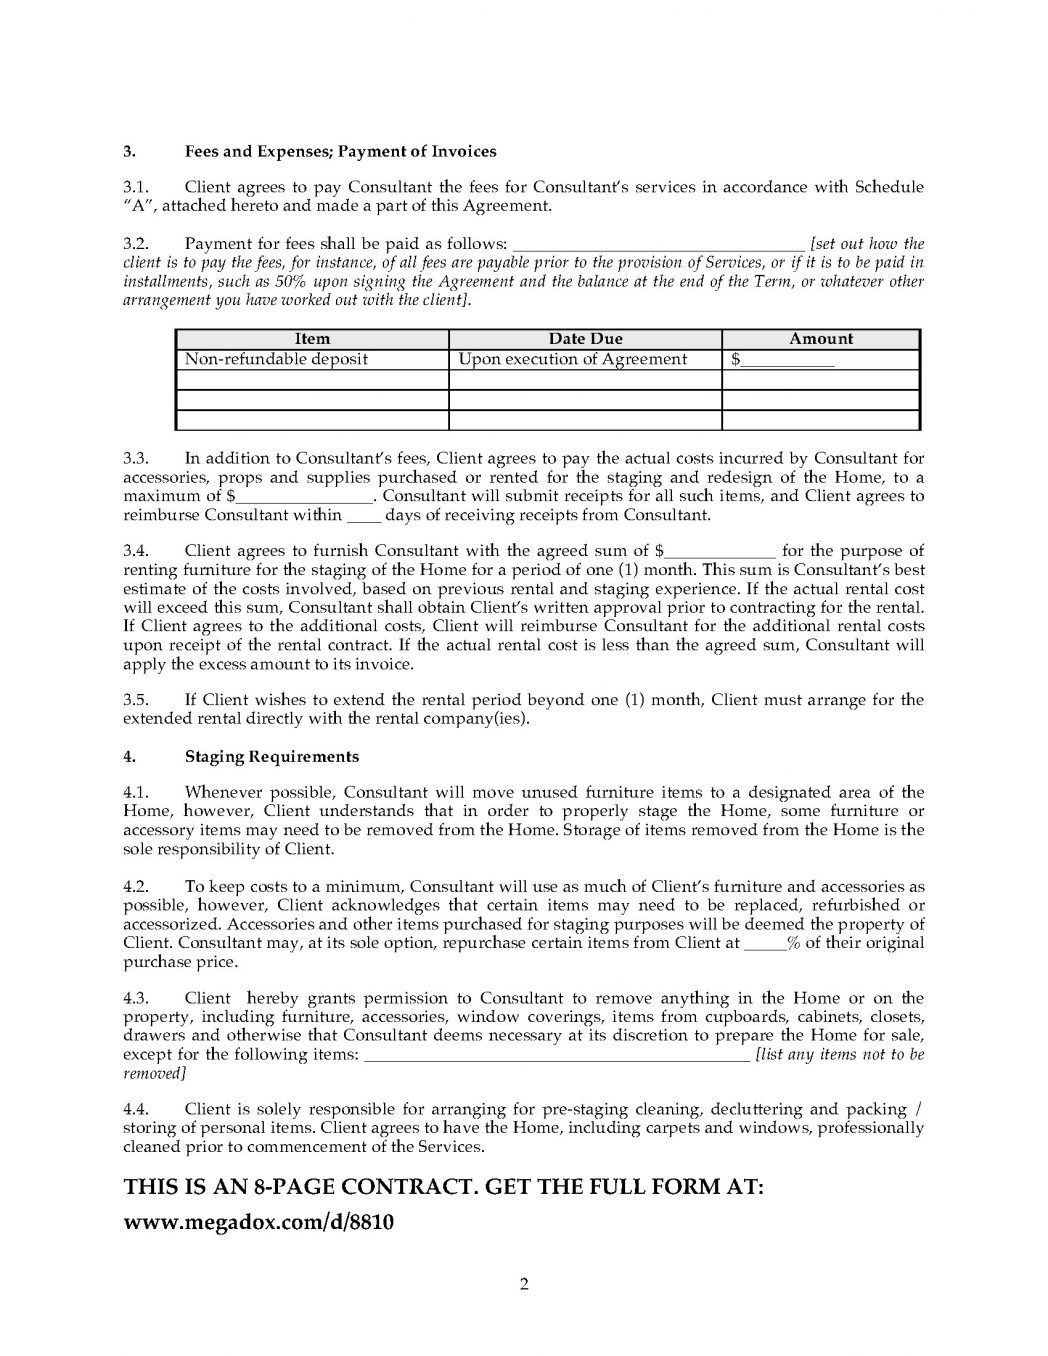 011 Example Ofpendix In Research Paper Buy Geometry Essay Ona Sample Furniture Purchase Invoice Template Home Staging Services Contract Legal Forms And Business R Format 1048x1356 Outstanding Appendices Apa Full